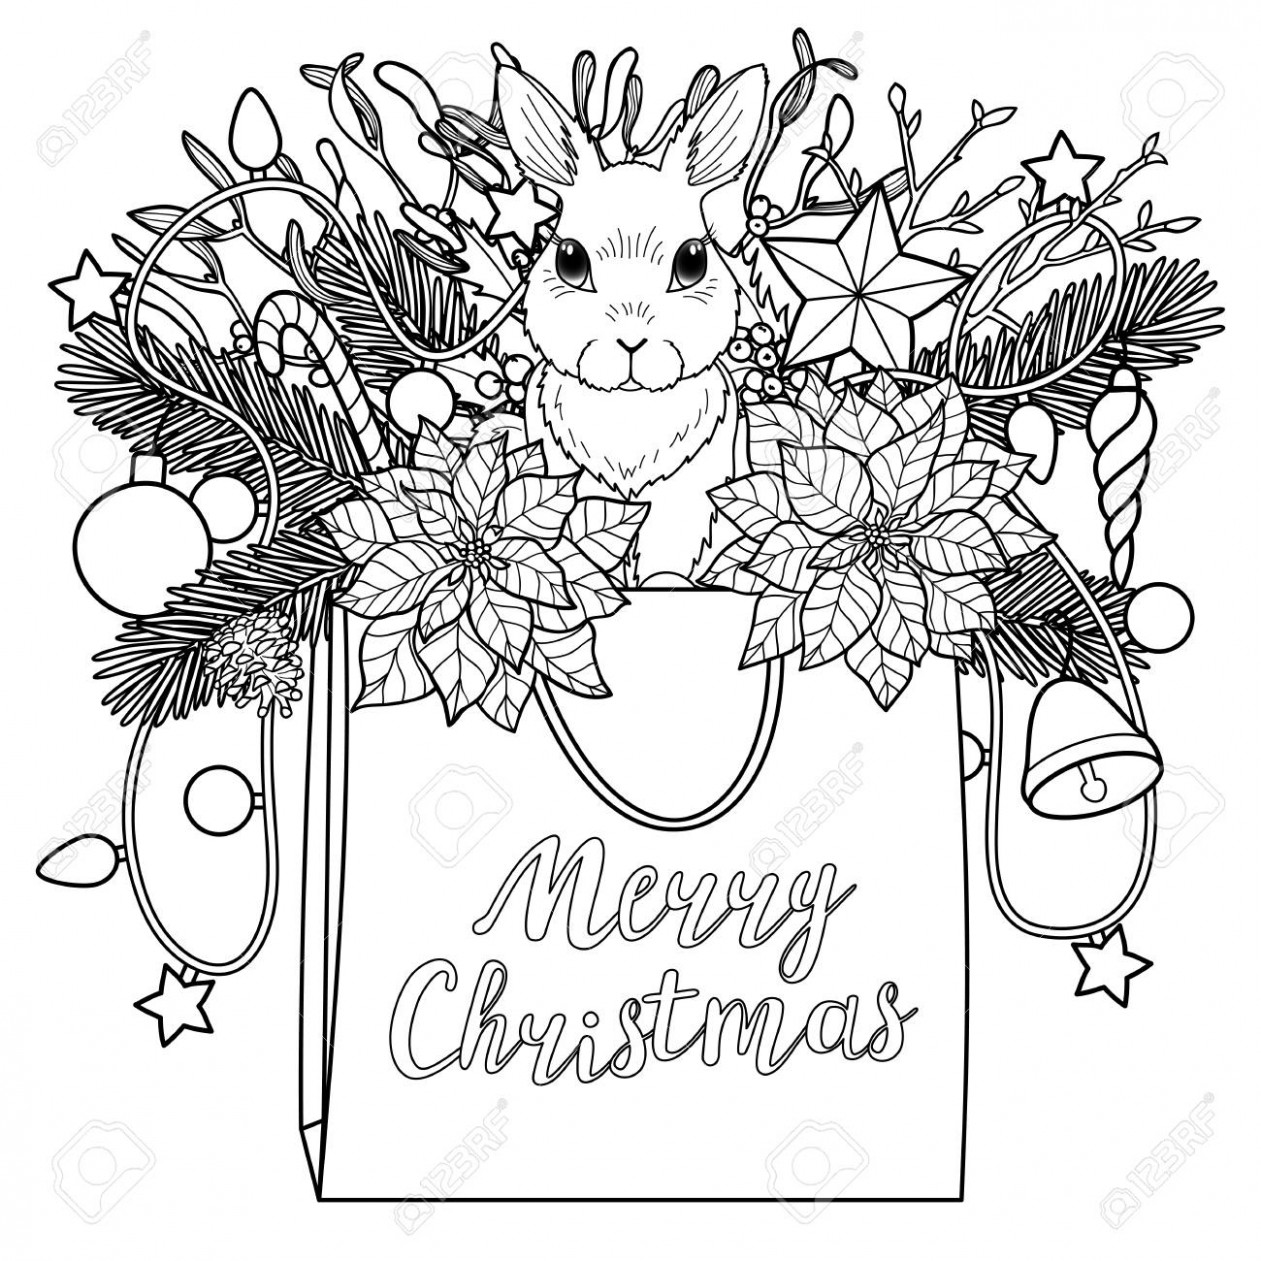 Merry Christmas Coloring Greeting Composition. Square Black And ..